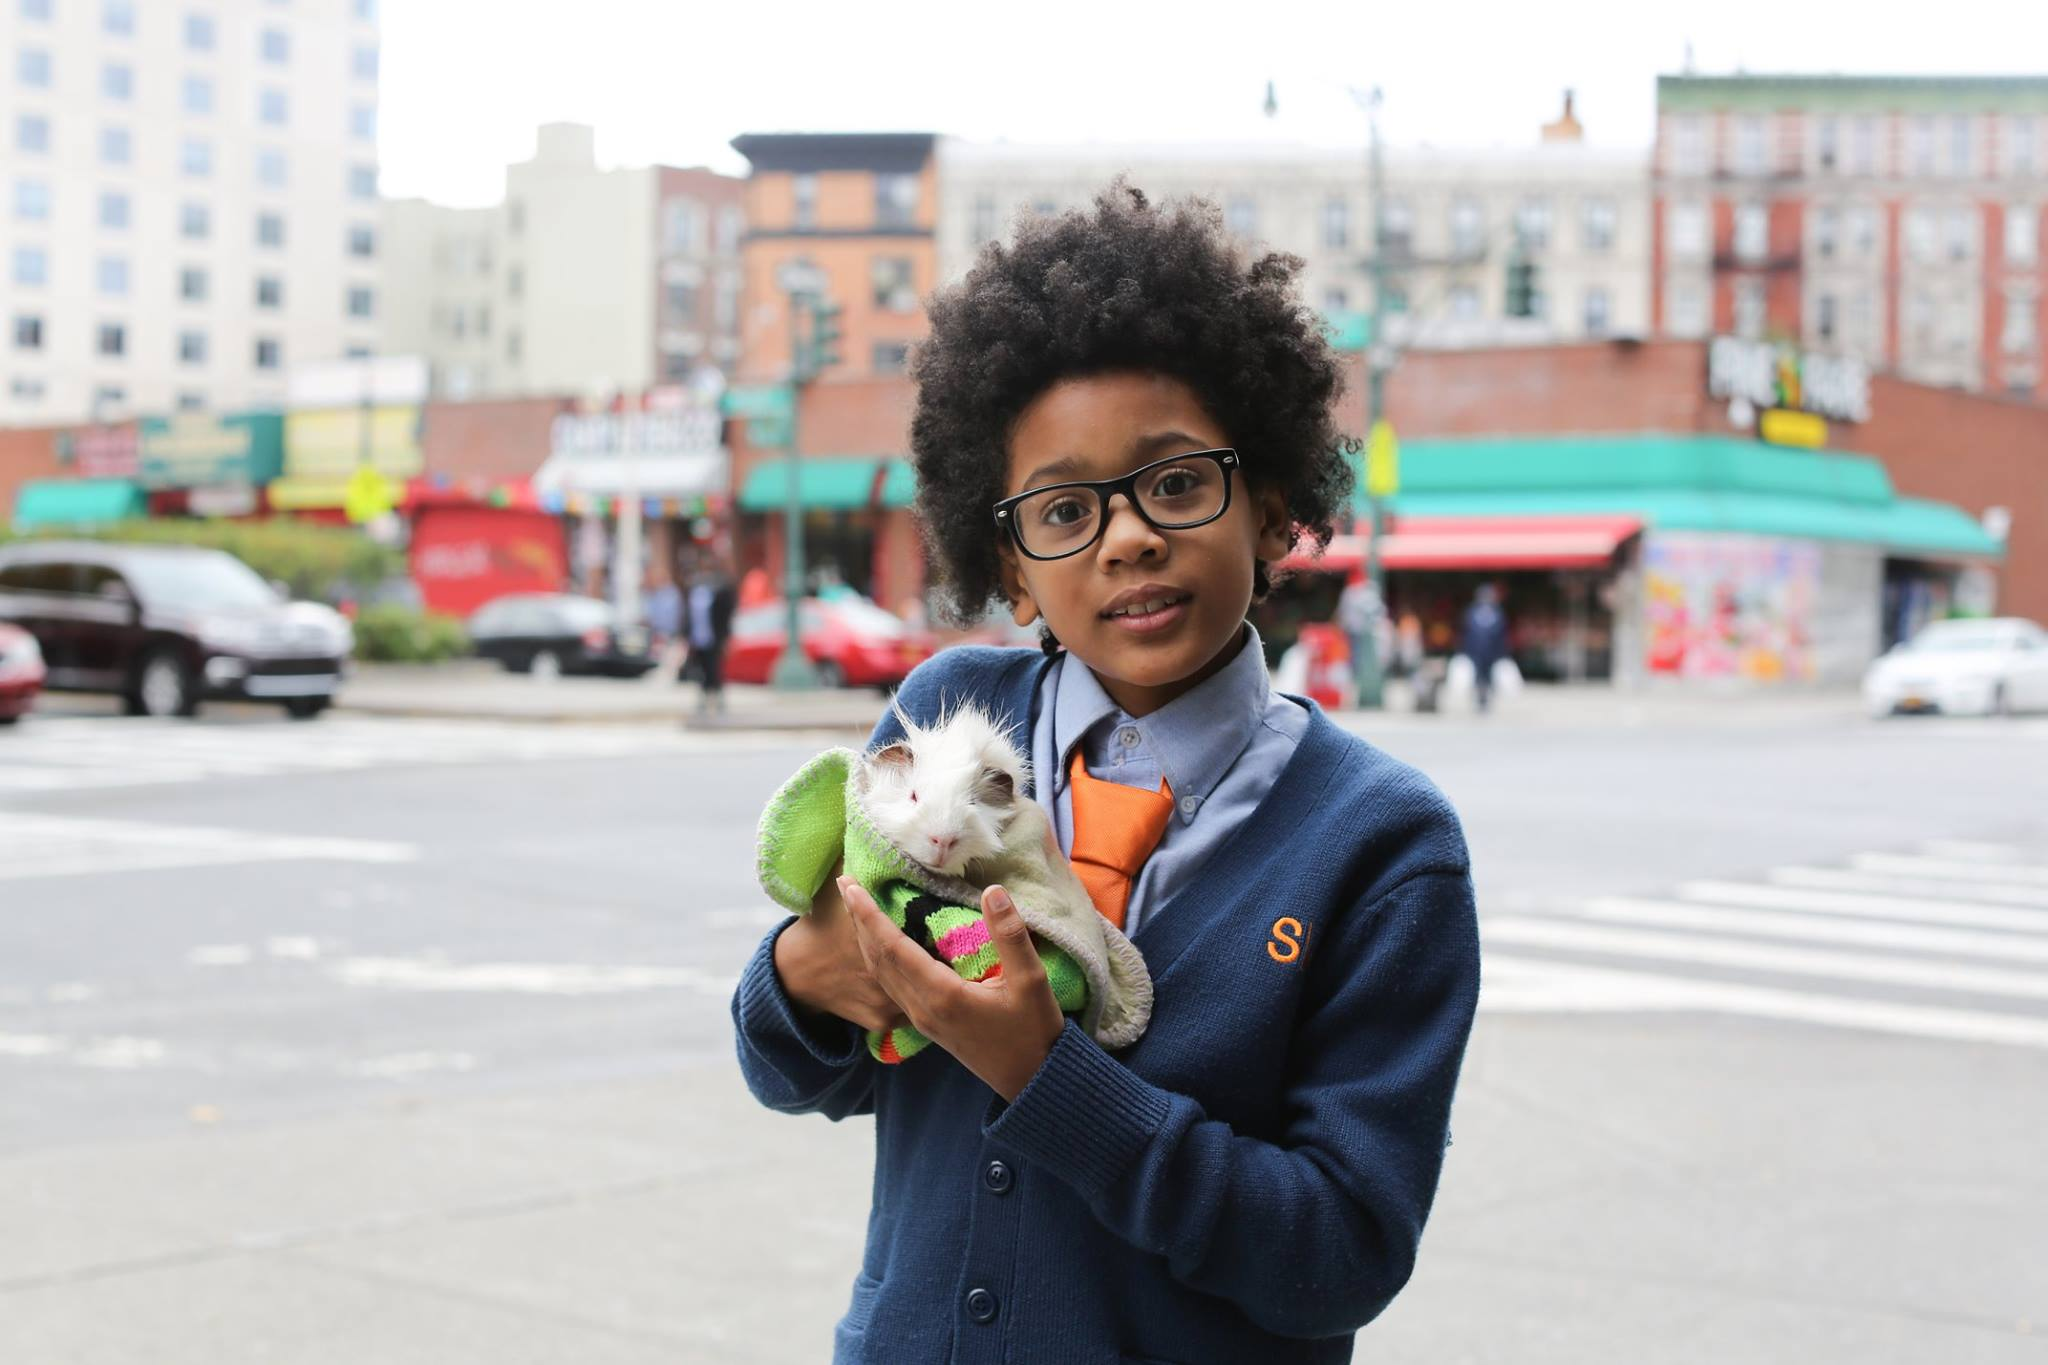 humans of new york dating coach A few months ago, i discovered humans of new york (hony), an instagram account and blog that features one-question interviews of new york's unique inhabitants hony is the brainchild of nyc photographer and blogger, brandon stanton.